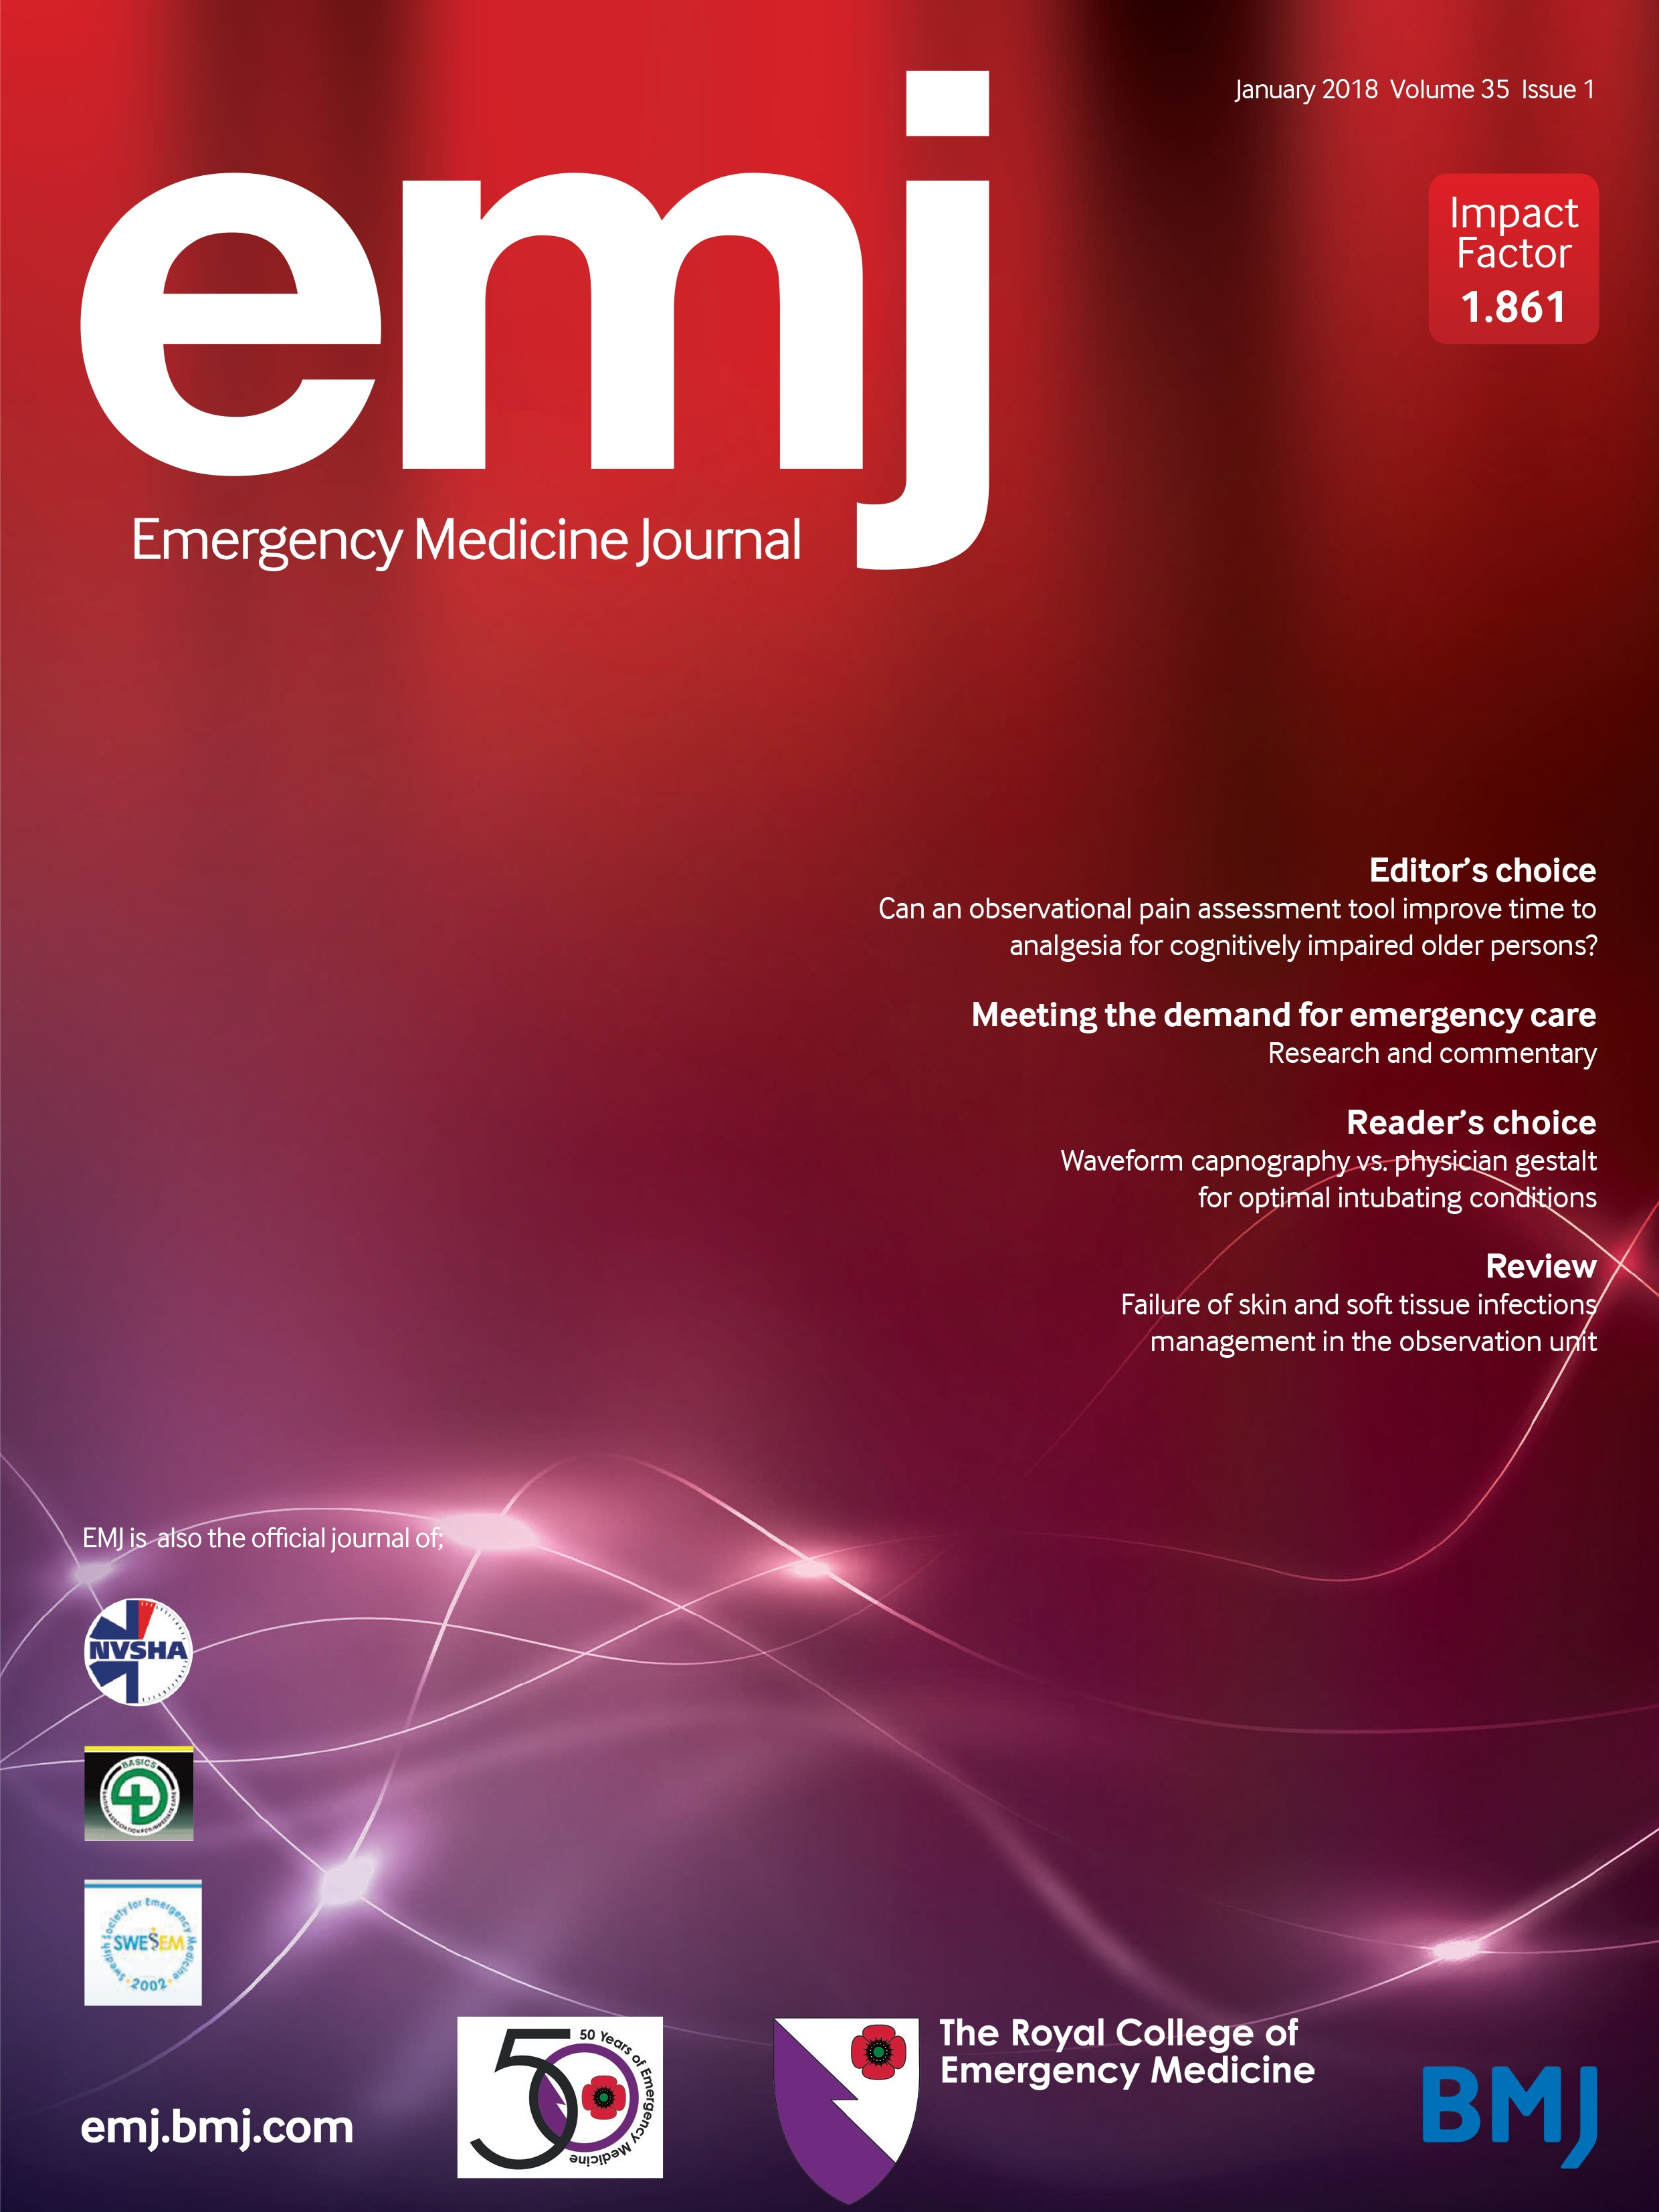 Profile and outcomes of critically ill children in a lower middle